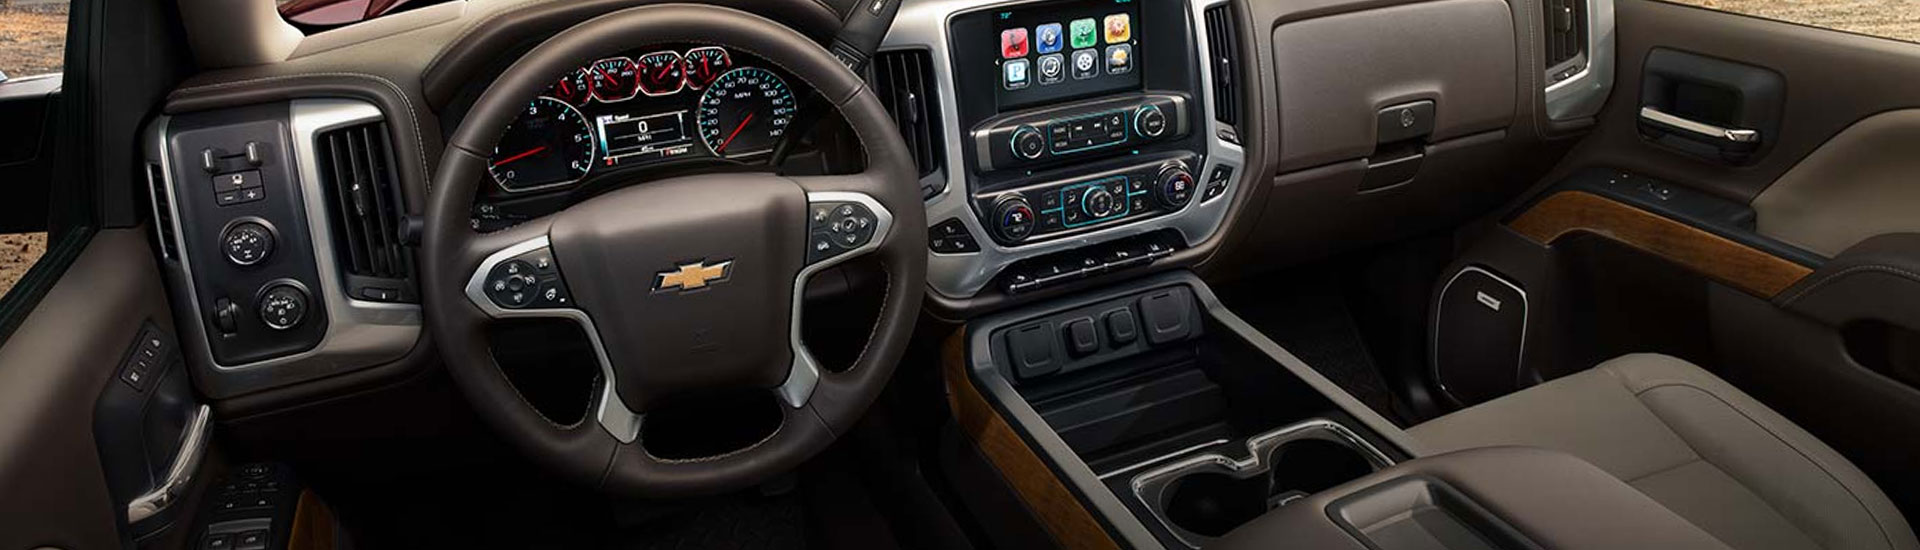 Chevrolet Silverado Dash Kits